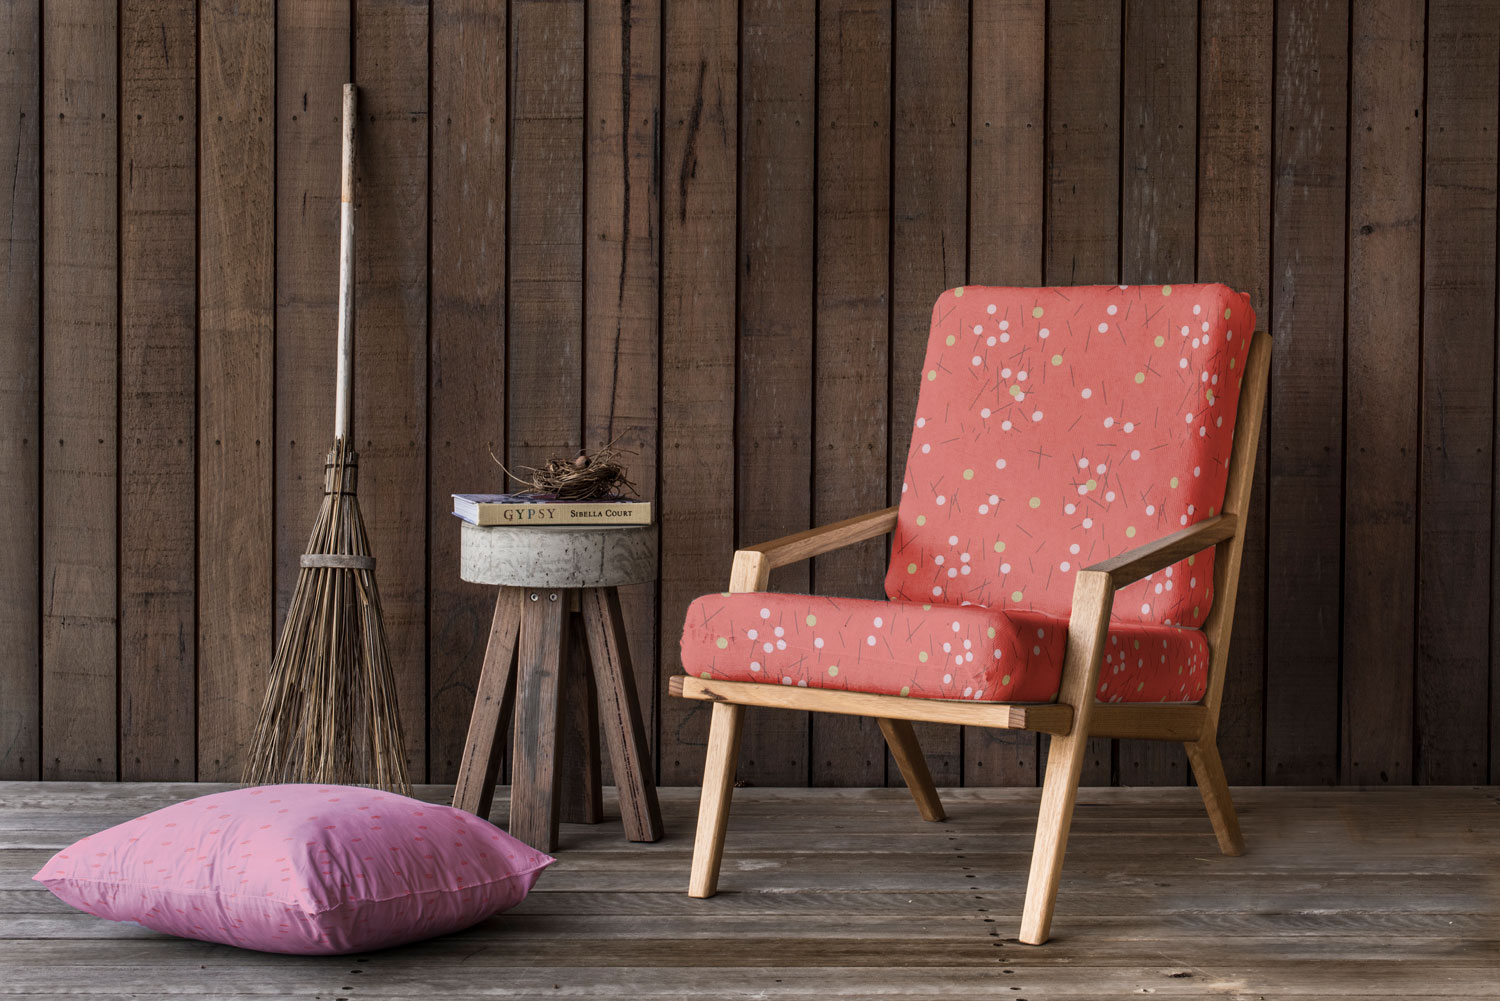 There are endless possibilities with Zen Chic's Just Red fabric collection, like this stylish upholstered armchair.